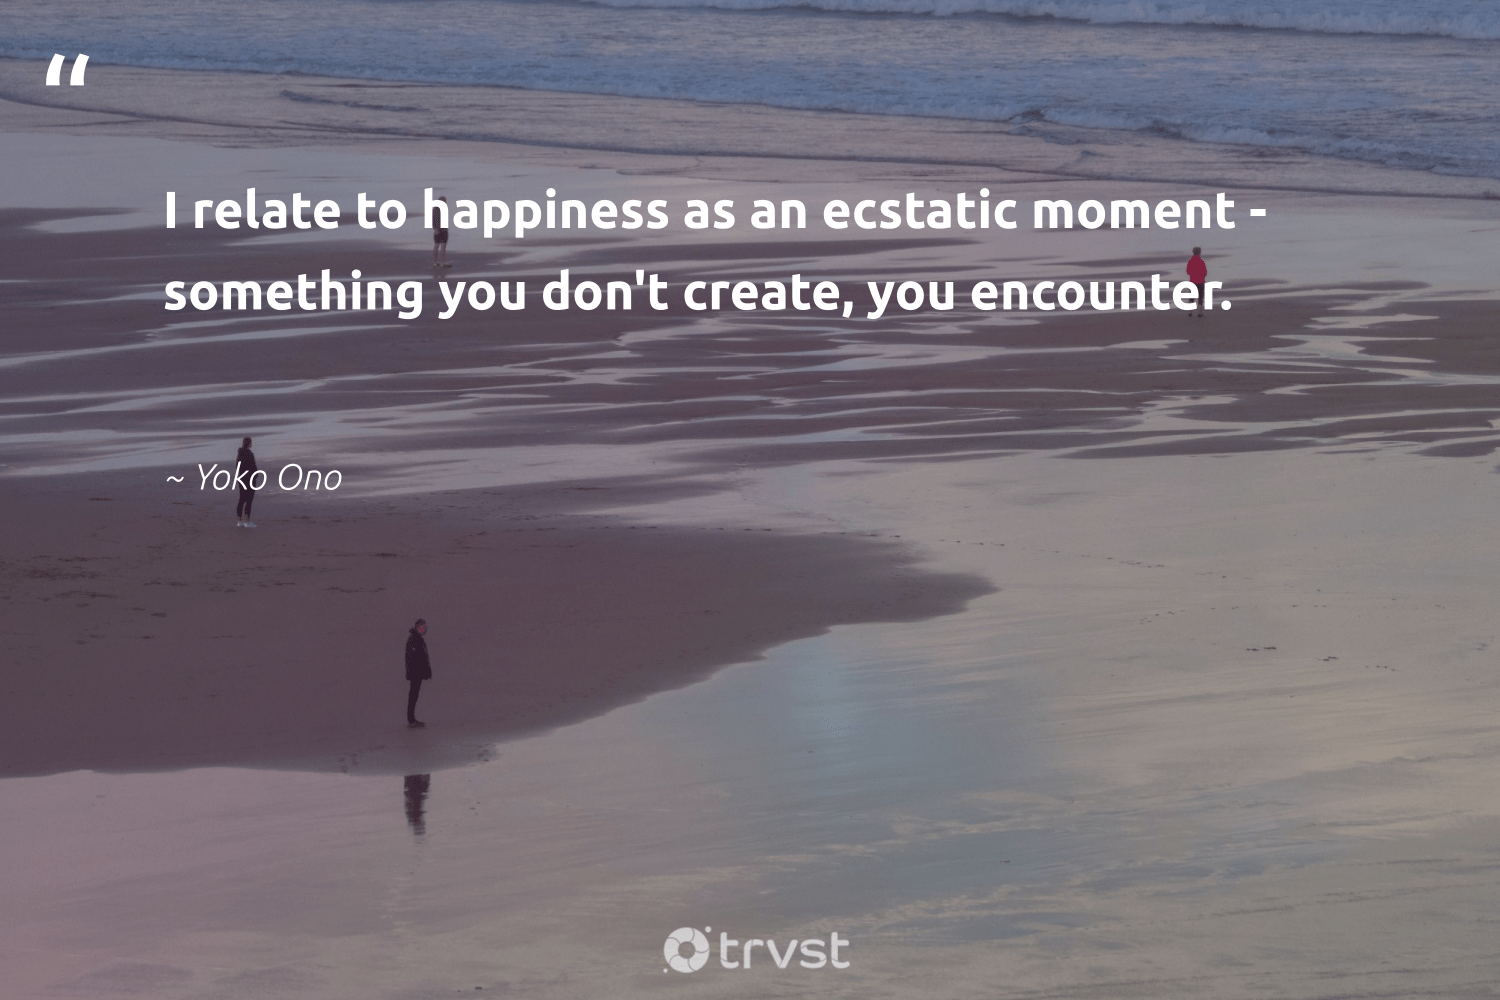 """""""I relate to happiness as an ecstatic moment - something you don't create, you encounter.""""  - Yoko Ono #trvst #quotes #happiness #mindset #gogreen #health #dosomething #nevergiveup #socialchange #changemakers #socialimpact #begreat"""